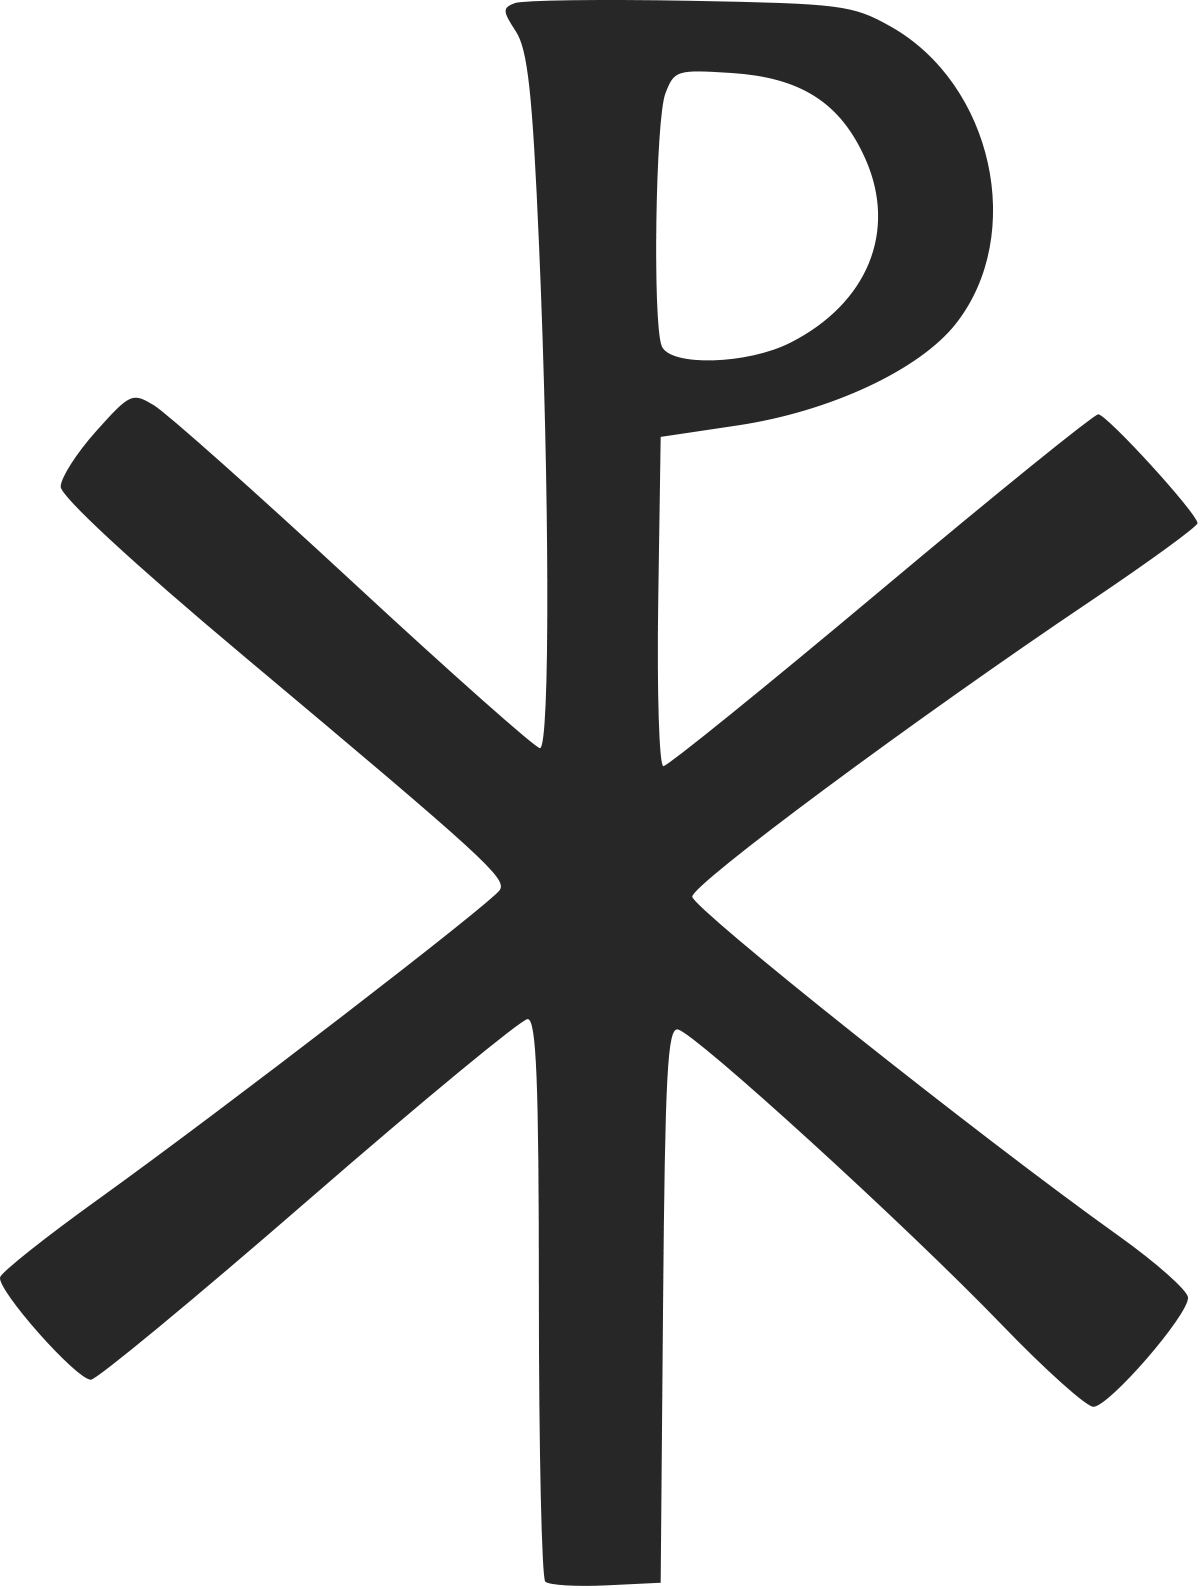 Link Chi Rho Symbol The Chi Rho Ka Ro Also Known As